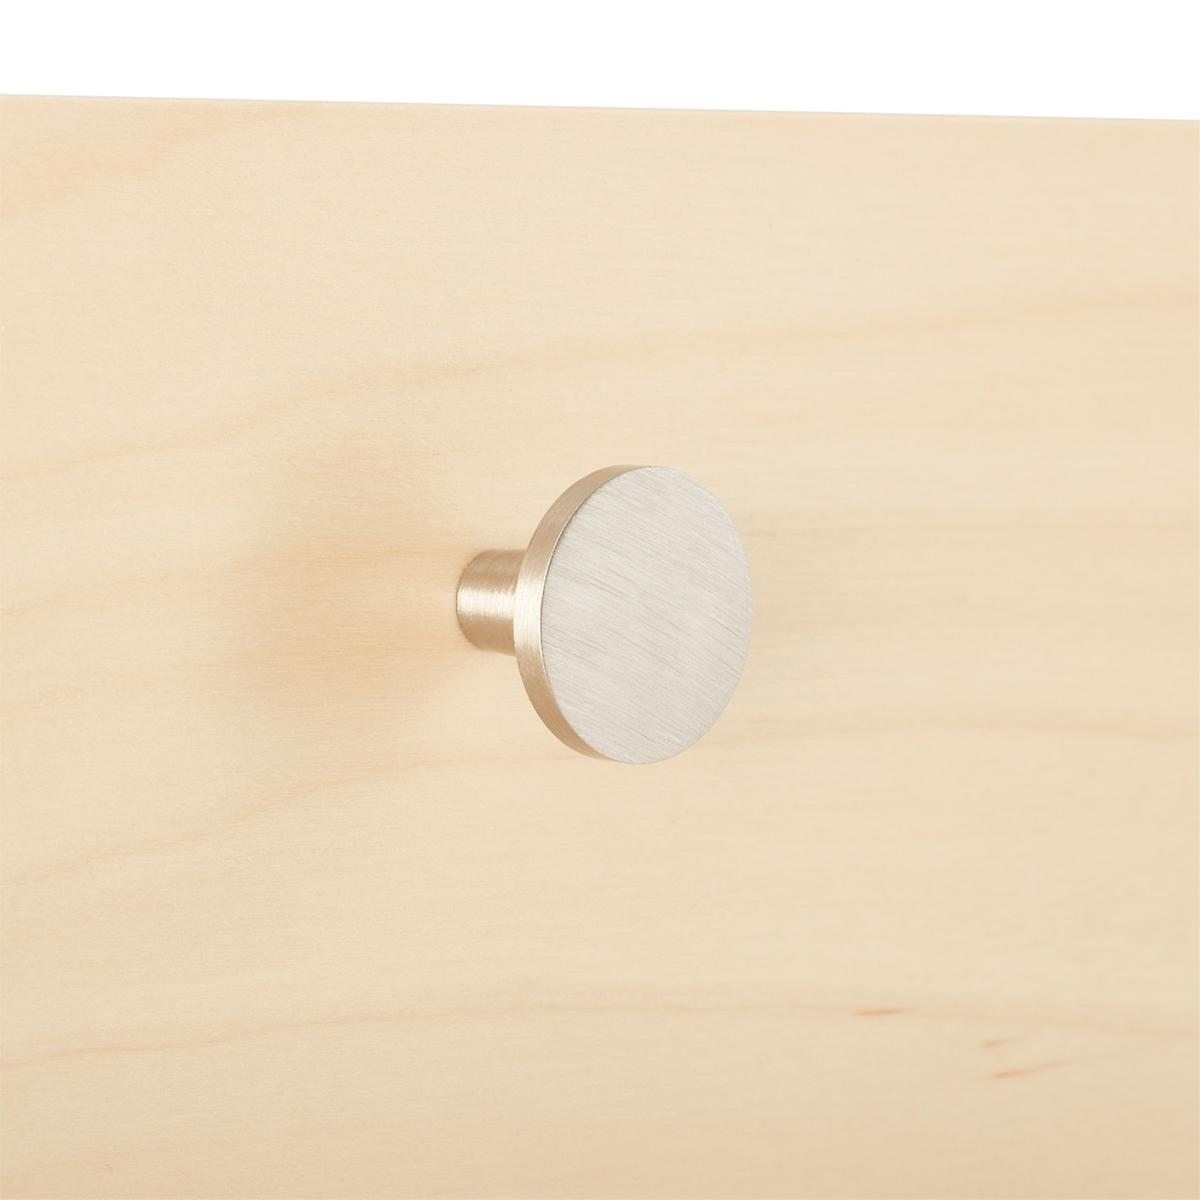 Elfa Decor Brushed Nickel Flat Knob